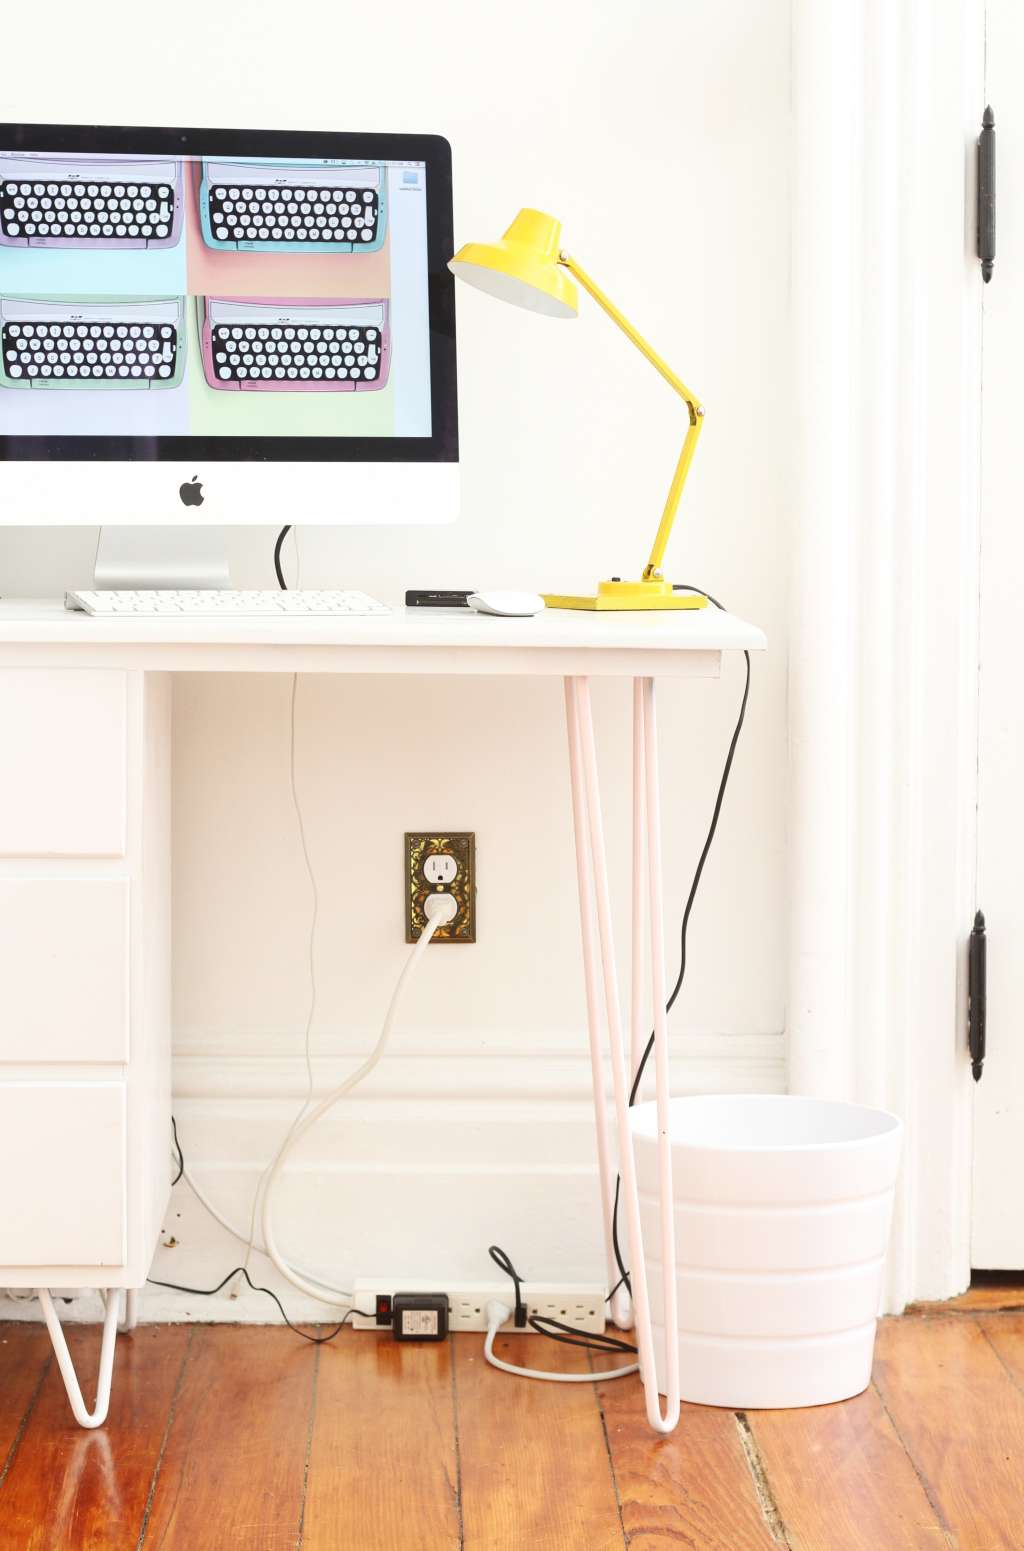 How To Hide Home Wires